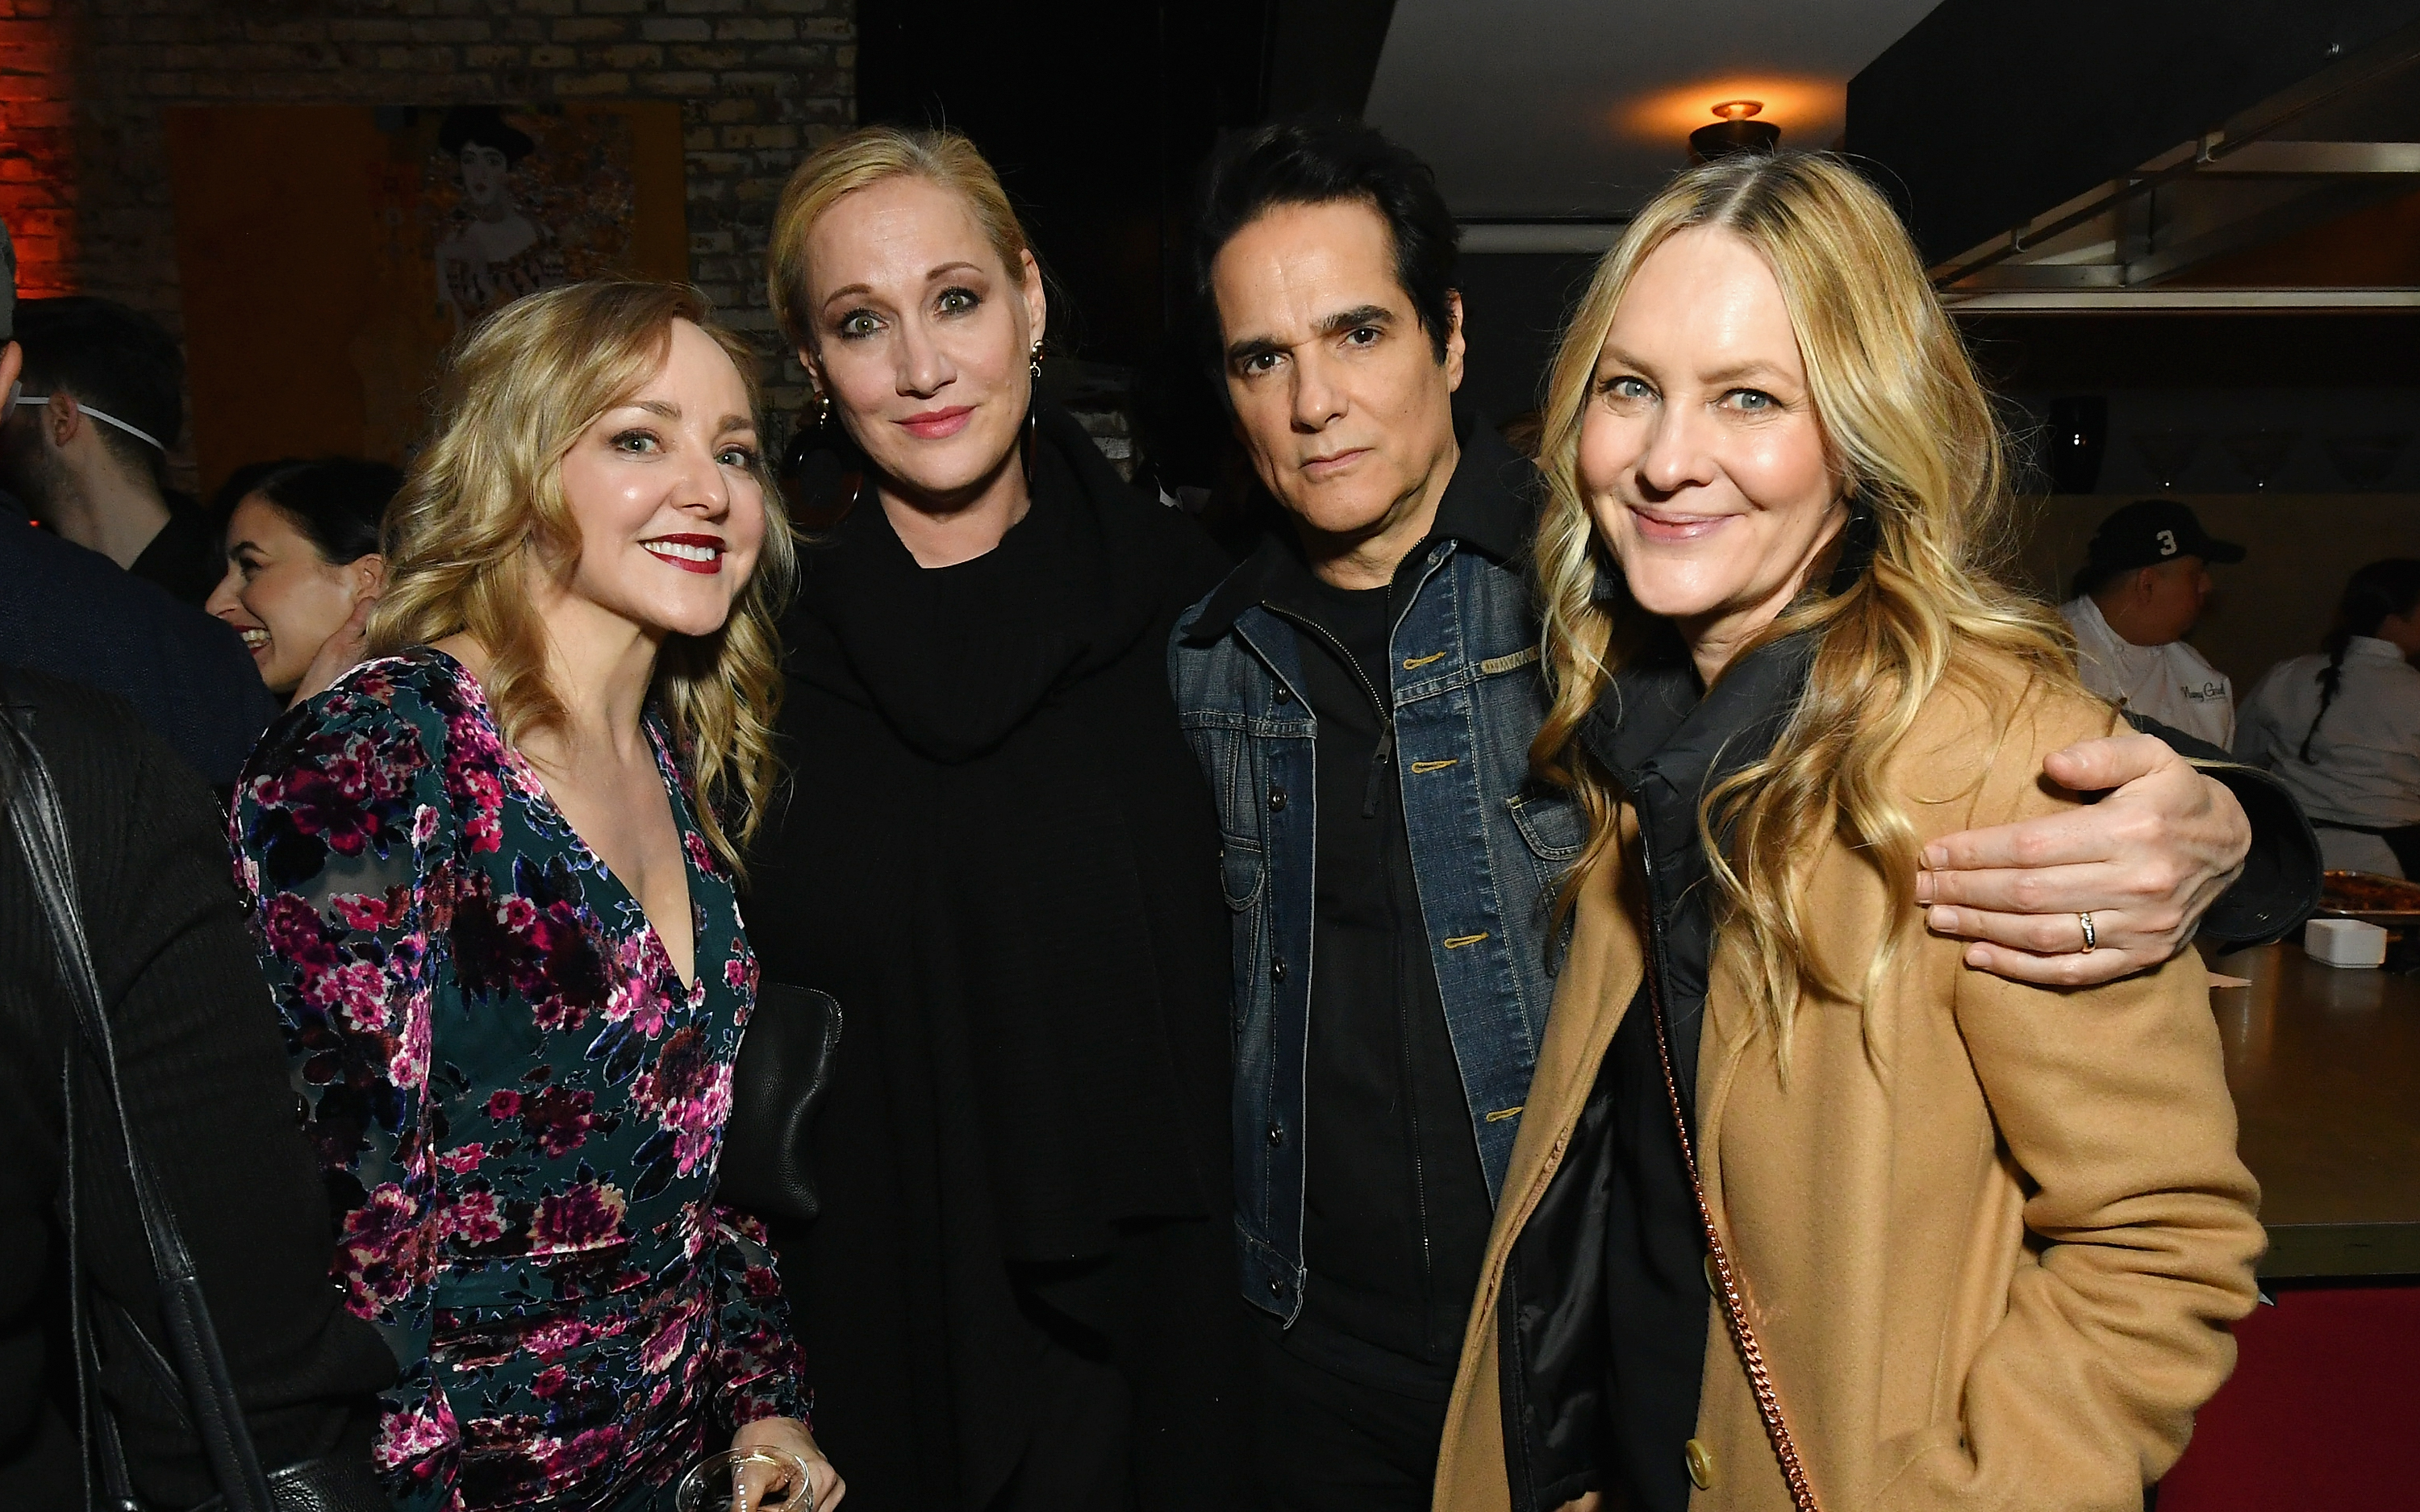 Geneva Carr and Yul Vazquez attend the 'I Am the Night' Premiere Party at 214 Lafayette on January 22, 2019 in New York City (Getty Images)